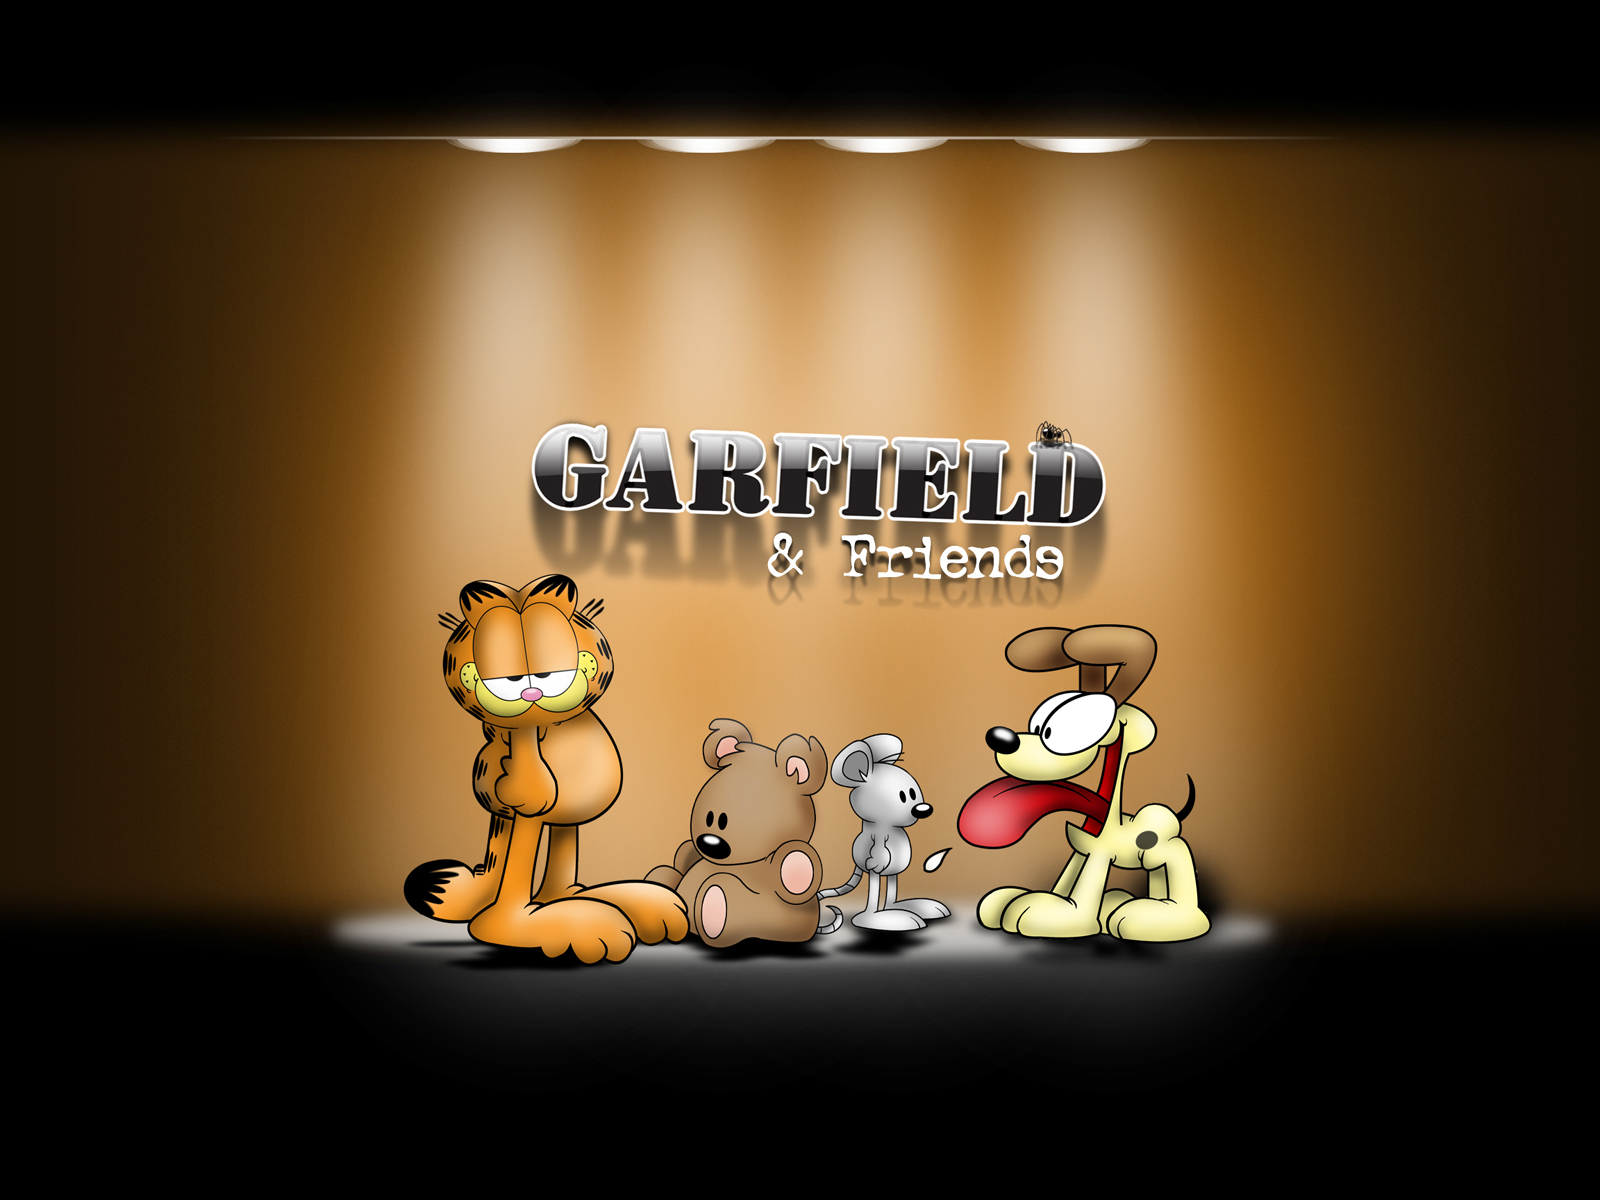 Garfield company wallpapers garfield company stock - Garfield wallpapers for mobile ...